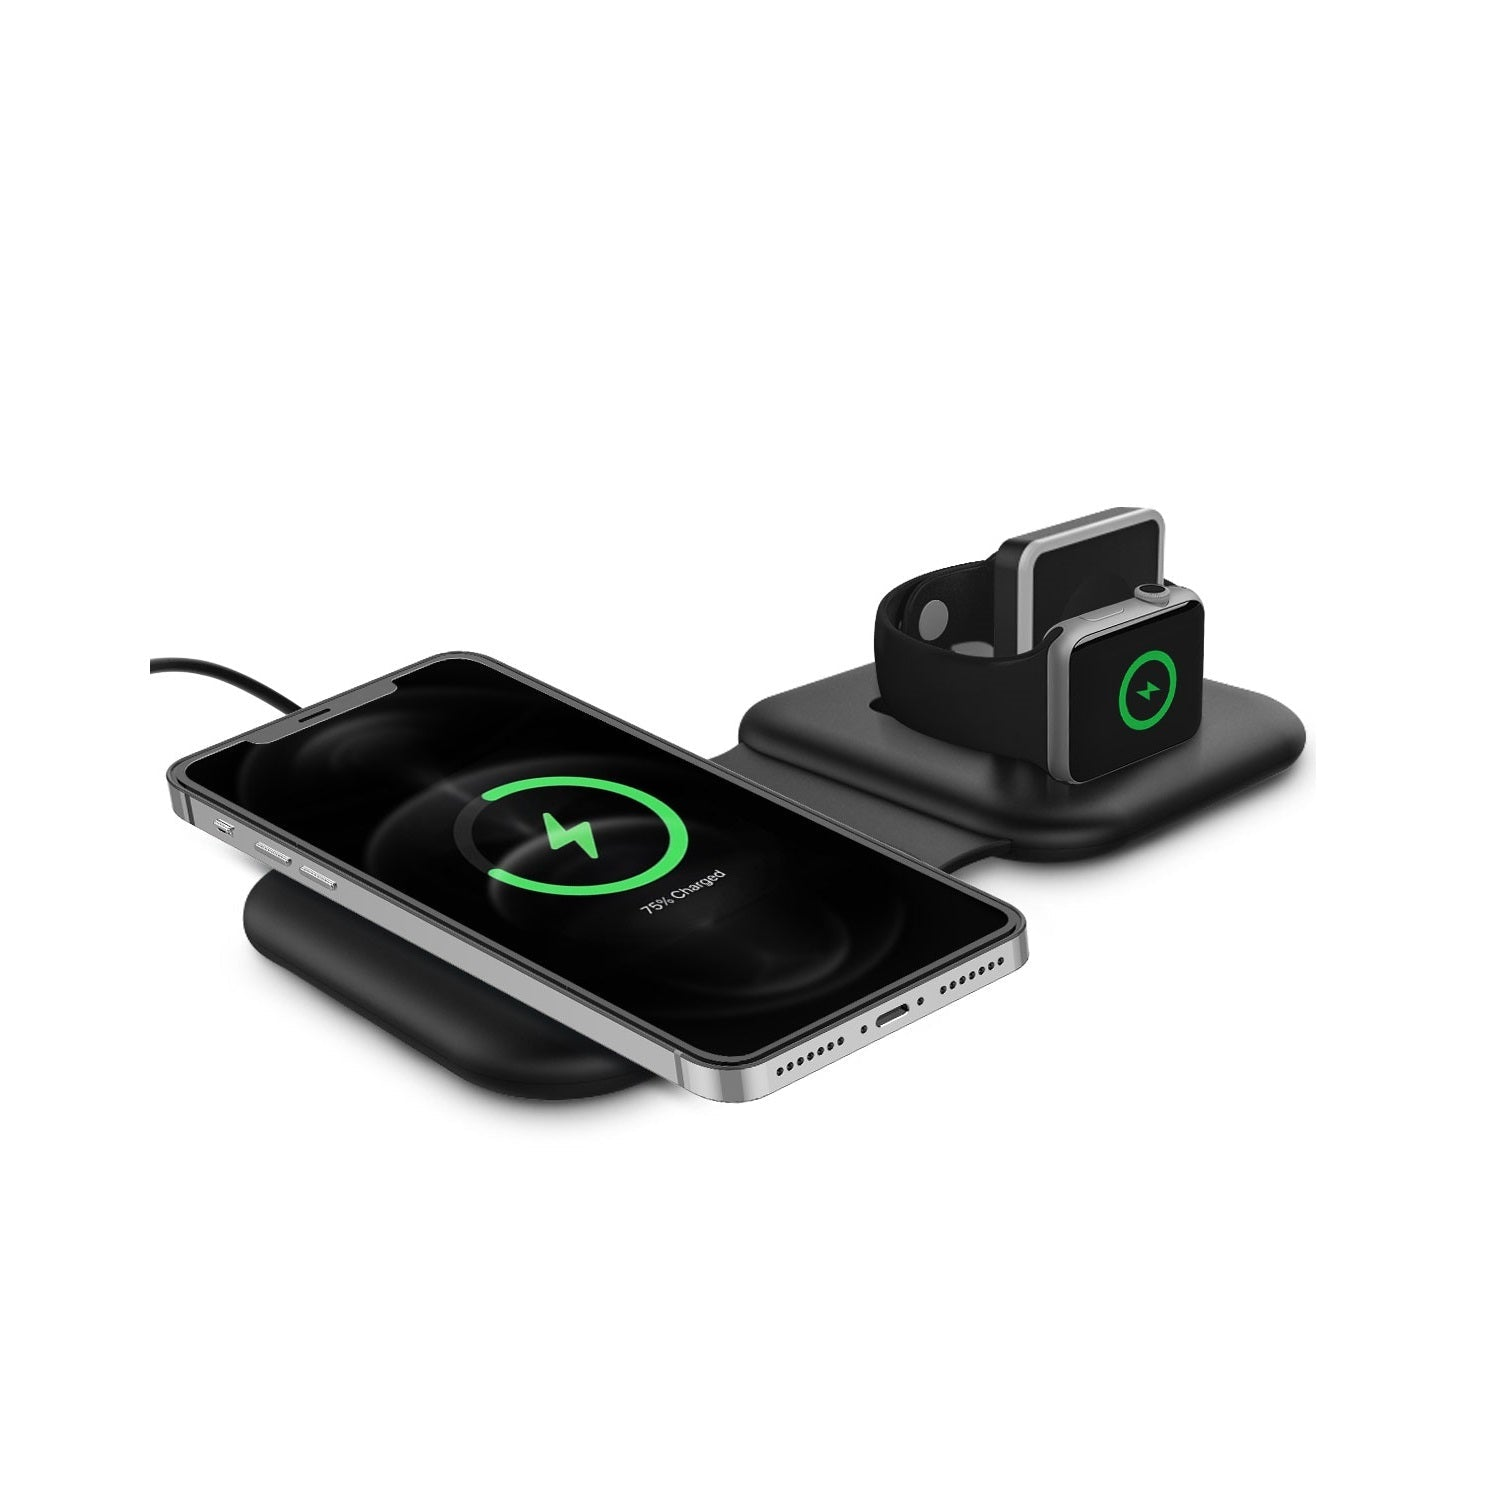 RAEGR MagFix Duo Arc M1330 15W MagSafe Compatible Wireless Charging Station (2 in1)